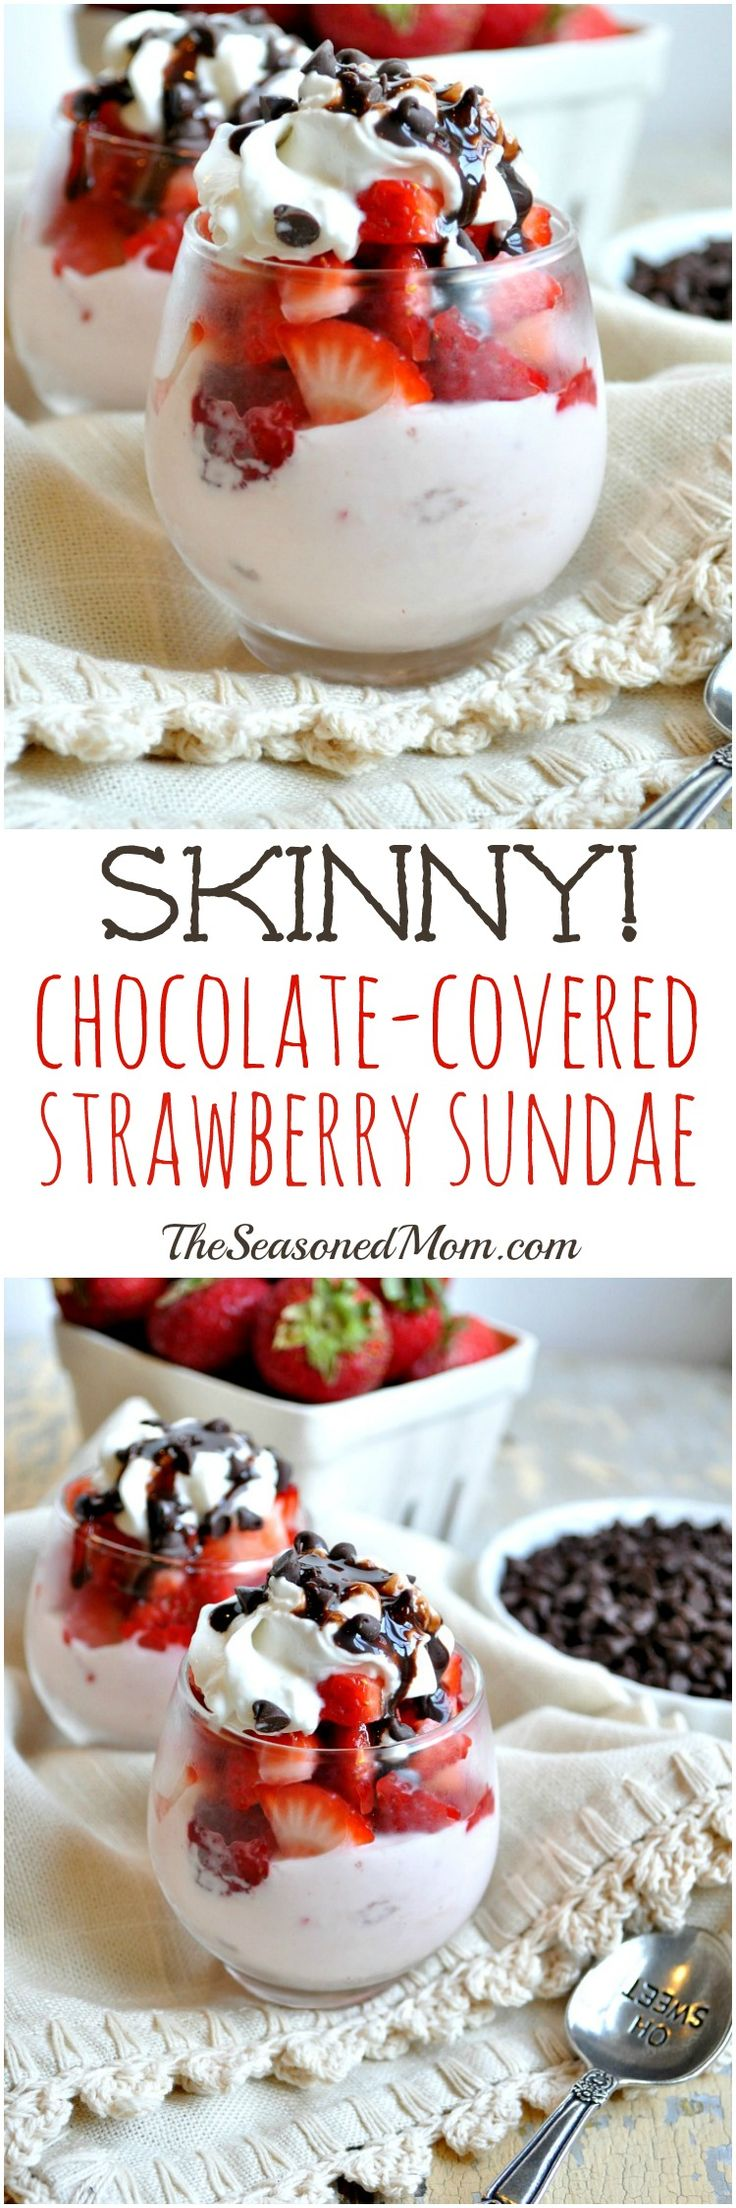 This SKINNY CHOCOLATE-COVERED STRAWBERRY SUNDAE is a 2-minute healthy snack or dessert that's high protein, low calorie, and actually good for you! #ad